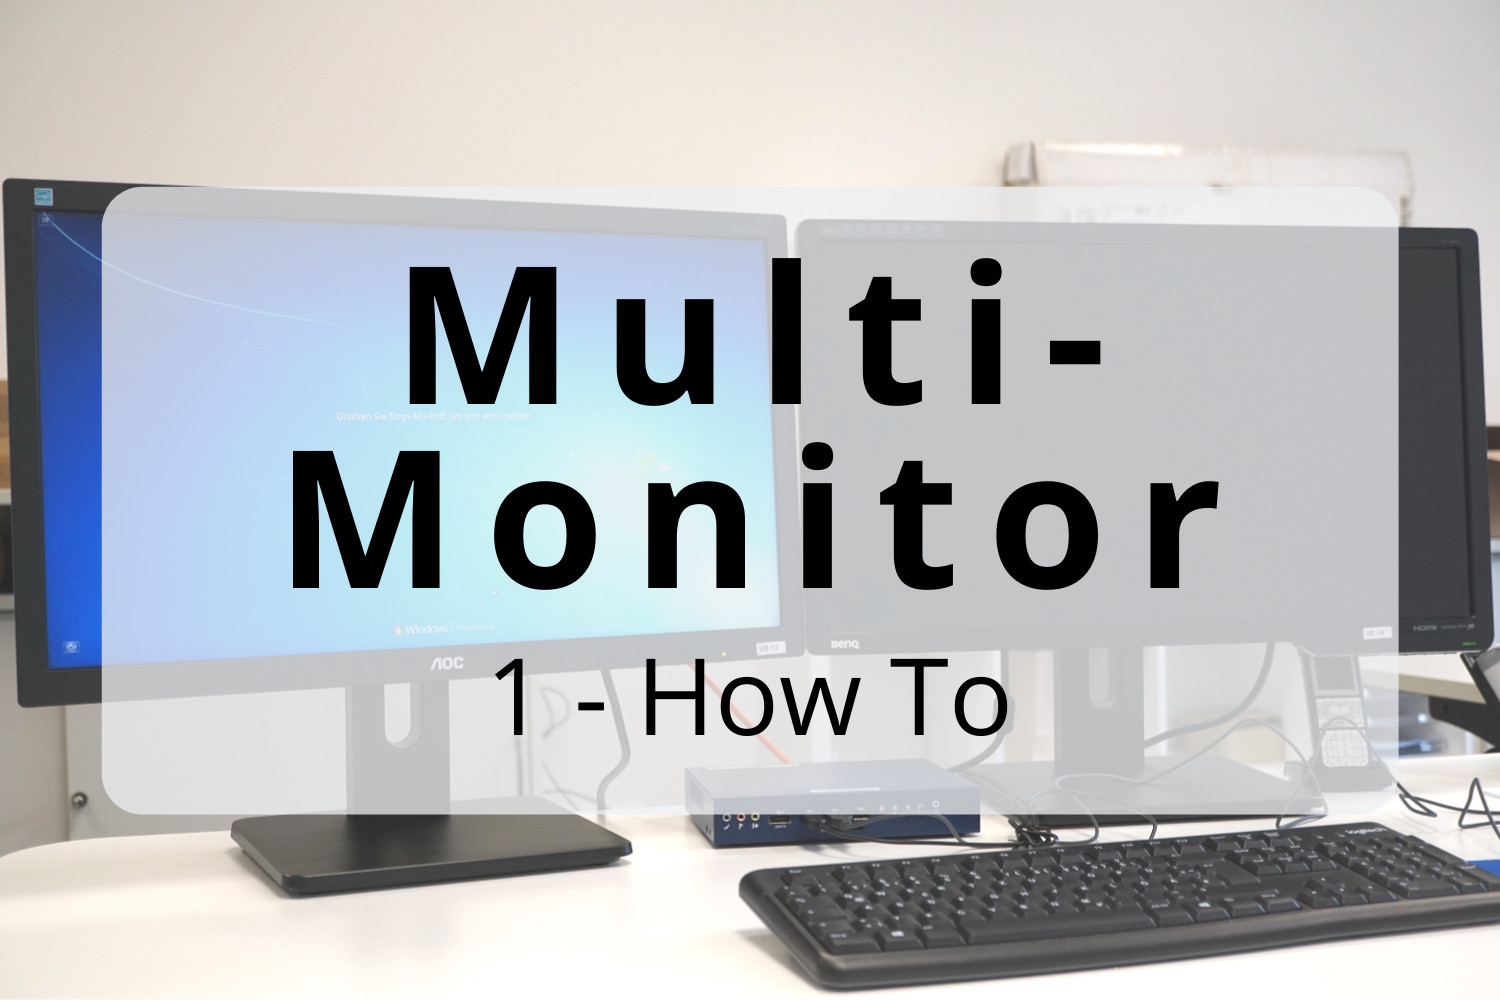 Multi-monitor – How to: Duplicated screen and extended desktop